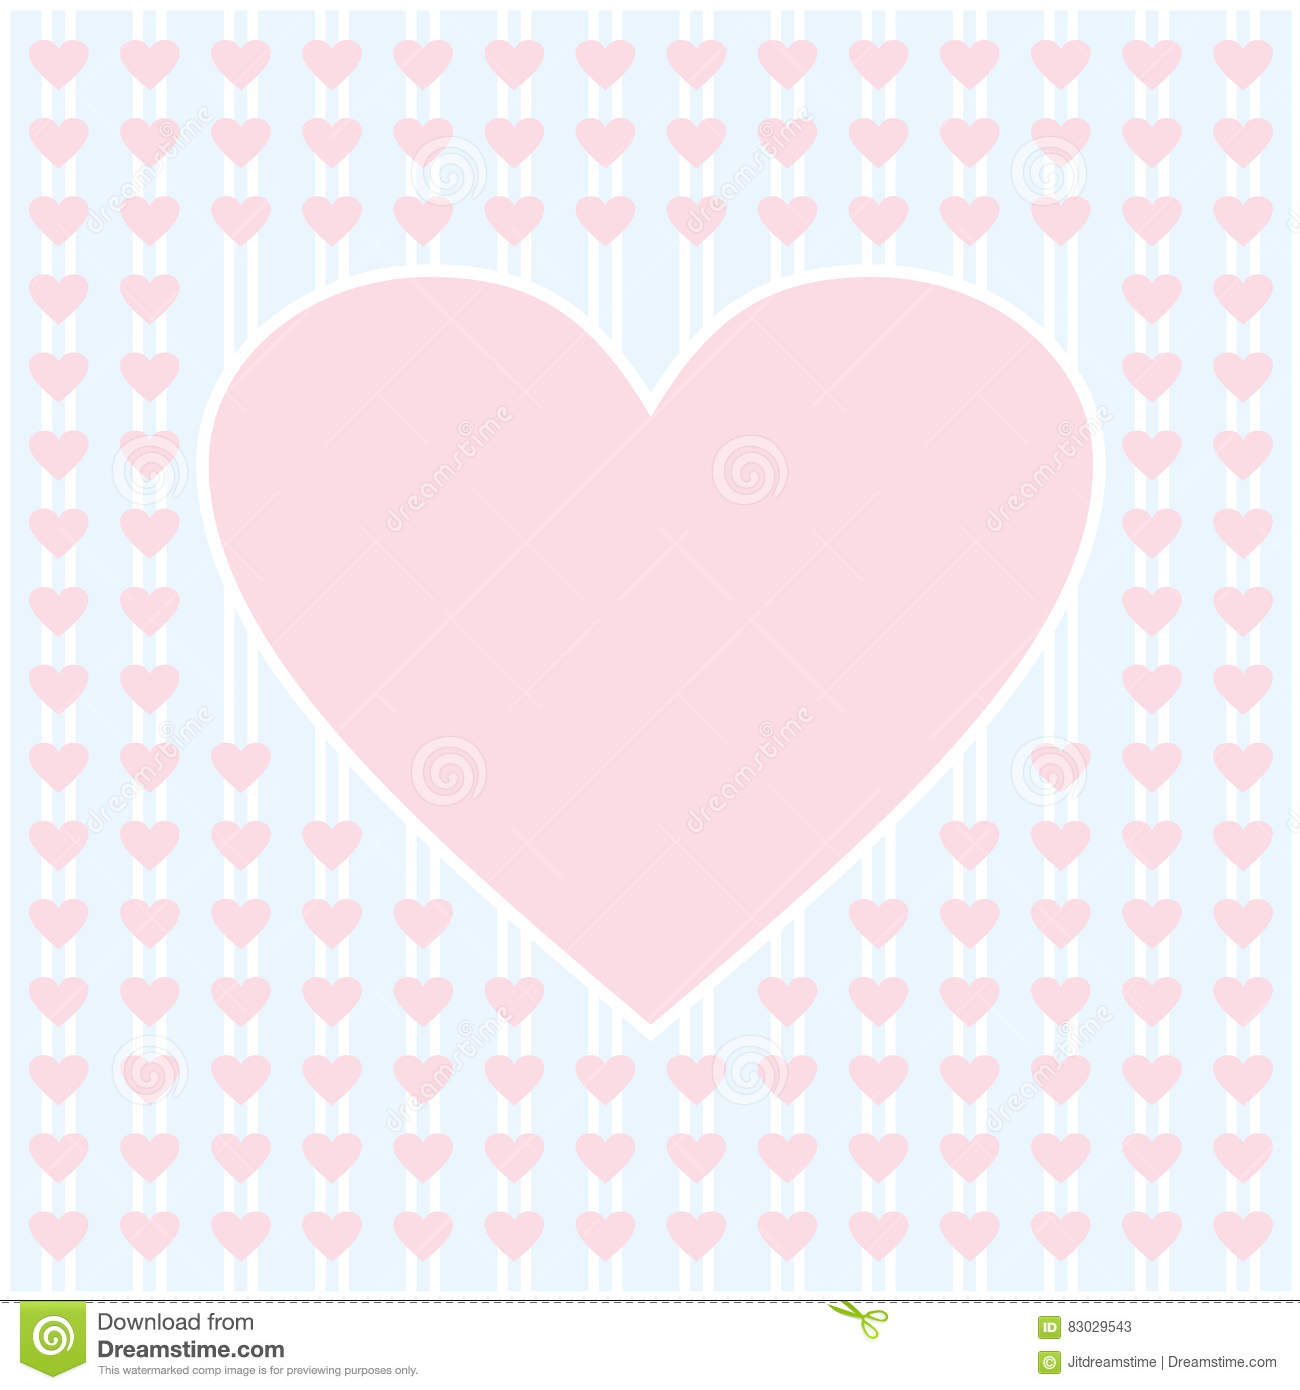 frame border shaped from pink heart on light blue